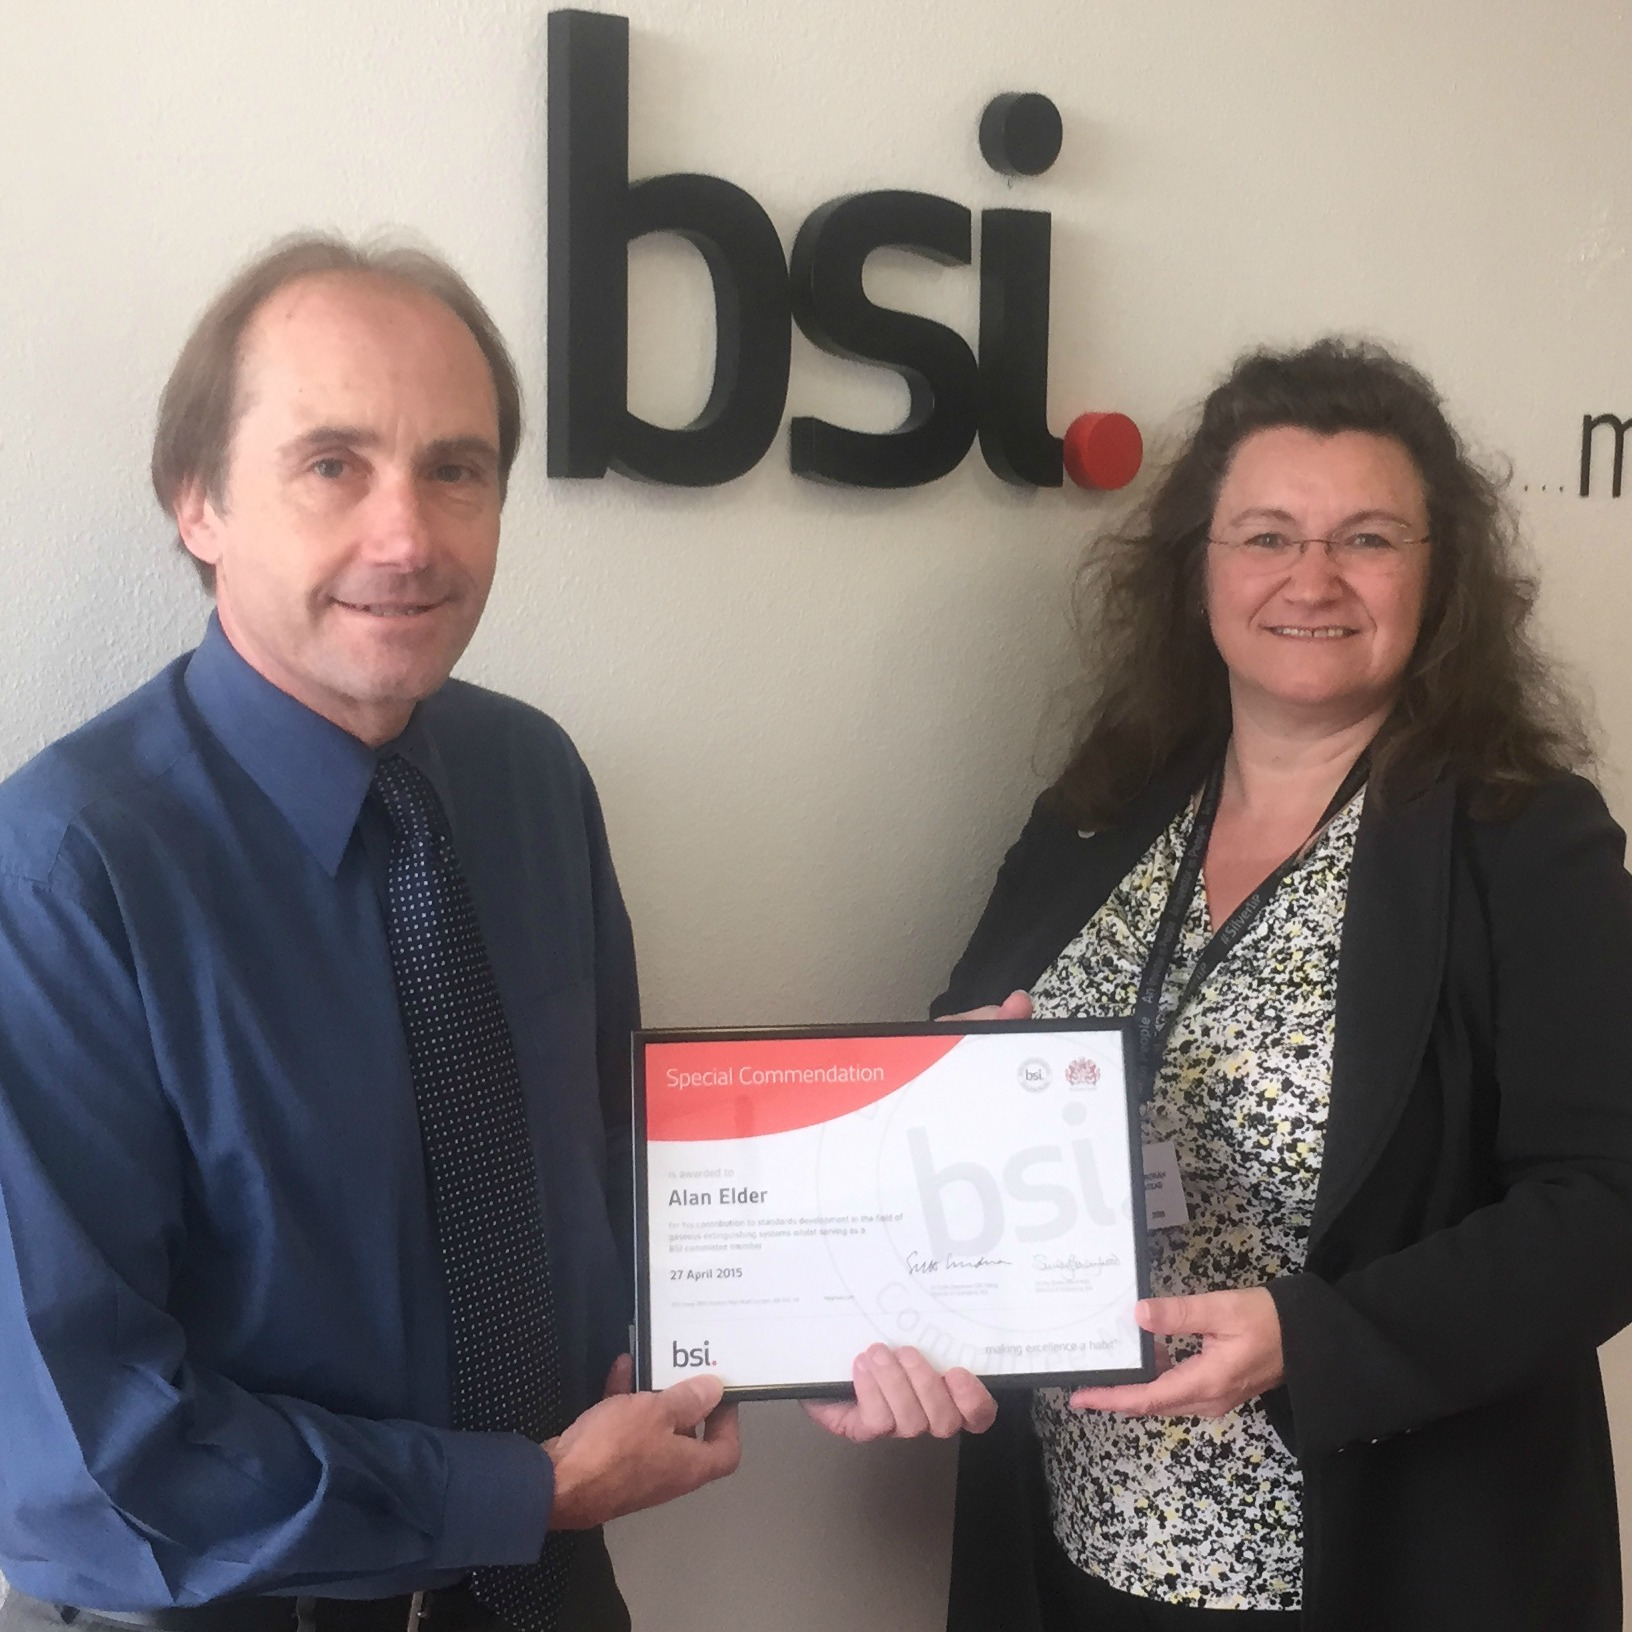 Alan Elder (left) receives his award from Debbie Stead, BSI